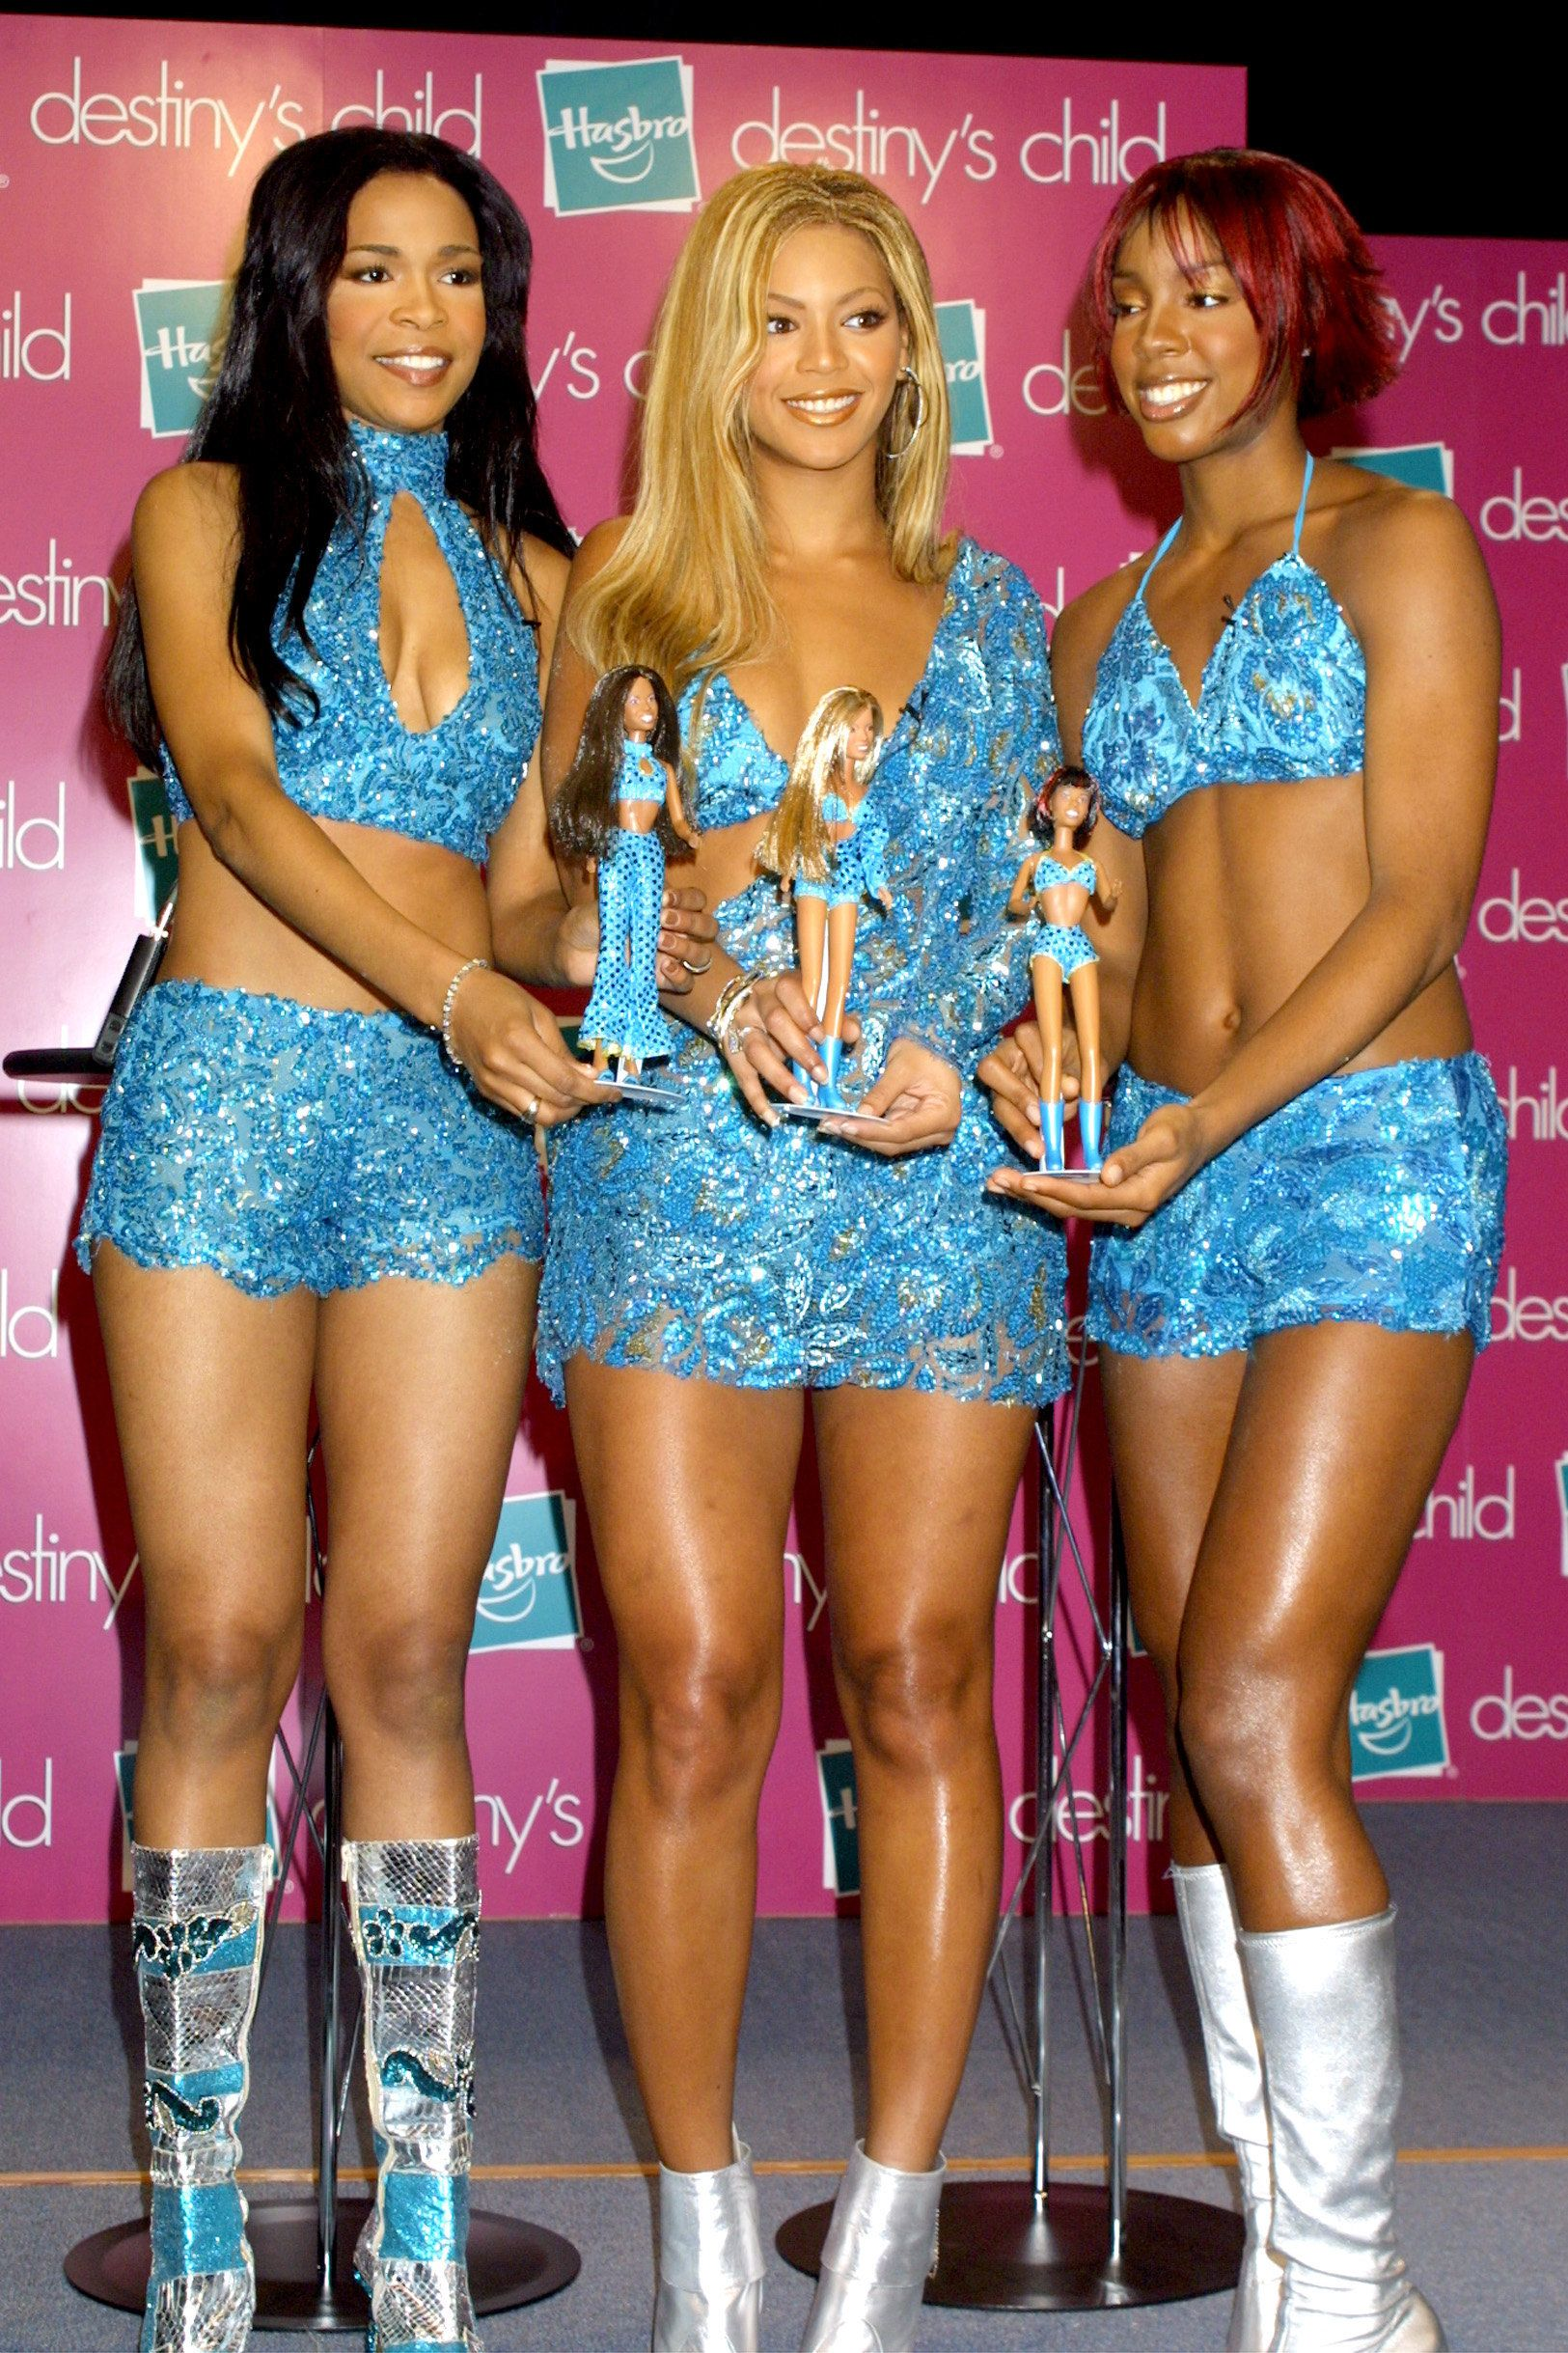 A Look Back At Destiny's Child's Most Iconic Coordinated Looks